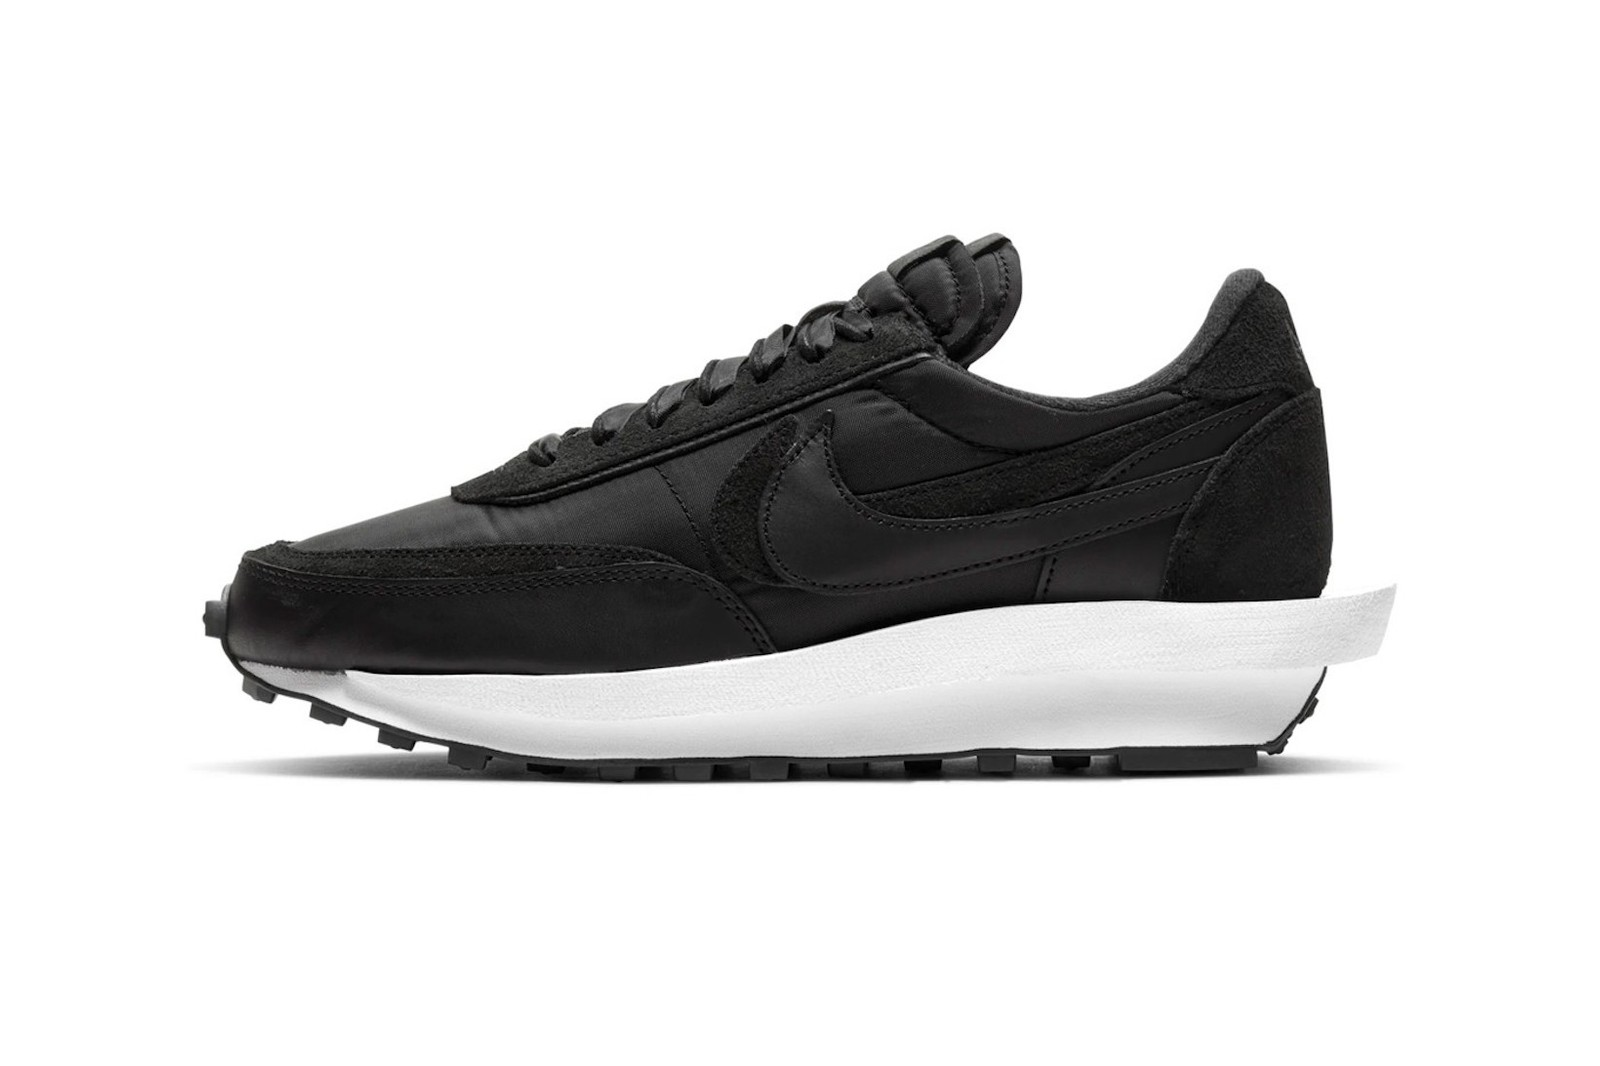 nike sacai ldv waffle sneakers anastasia beverly hills mascara makeup release date prices